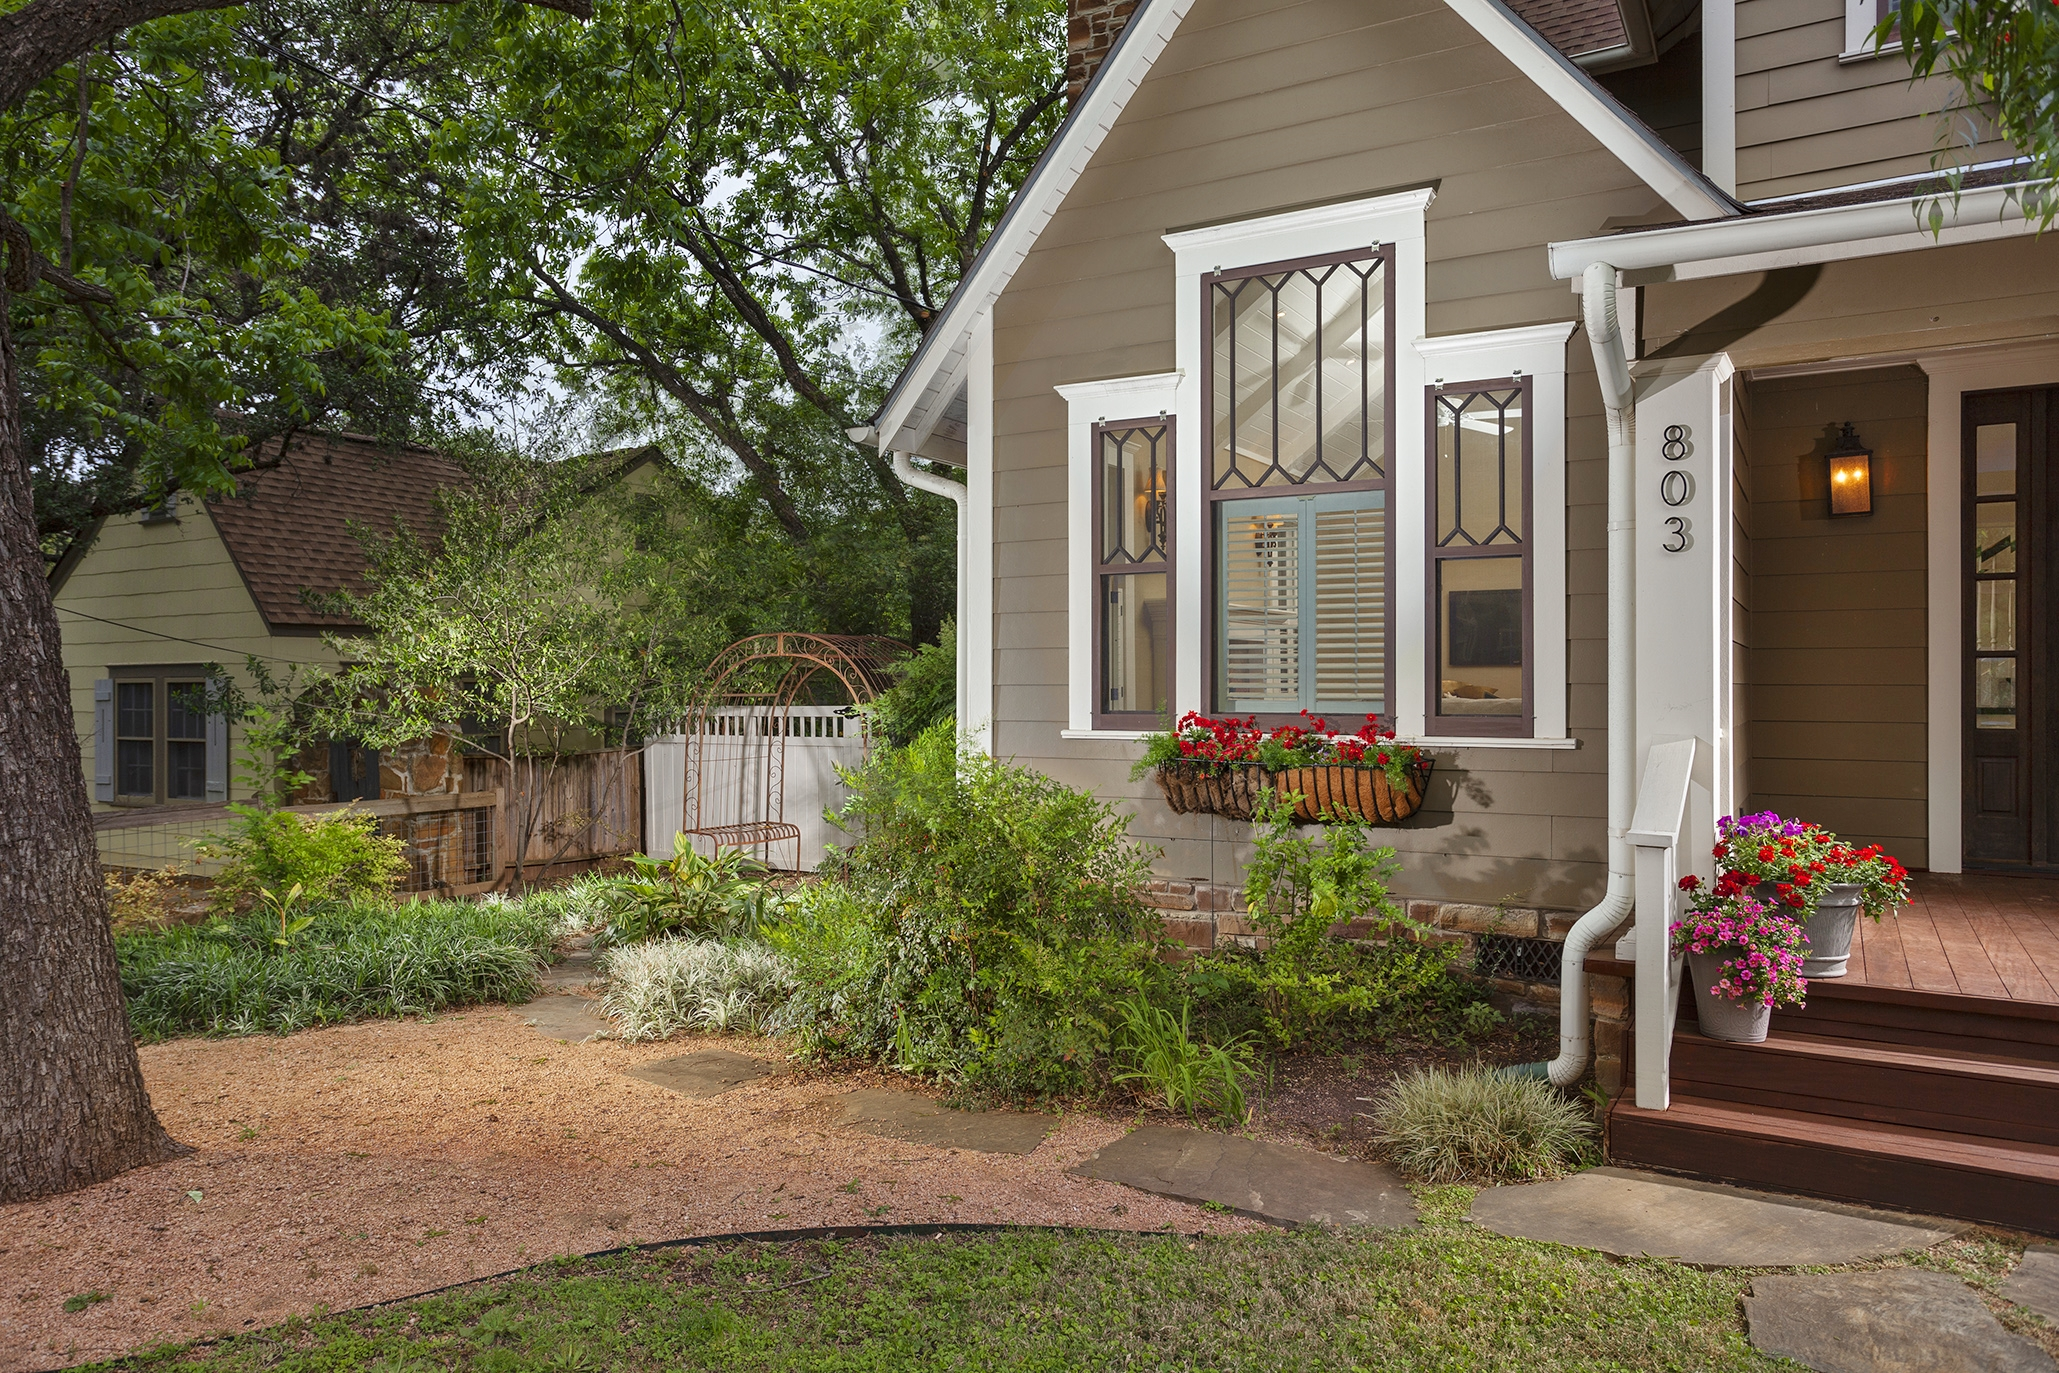 Increase your Austin home's value with these 10 curb appeal makeovers